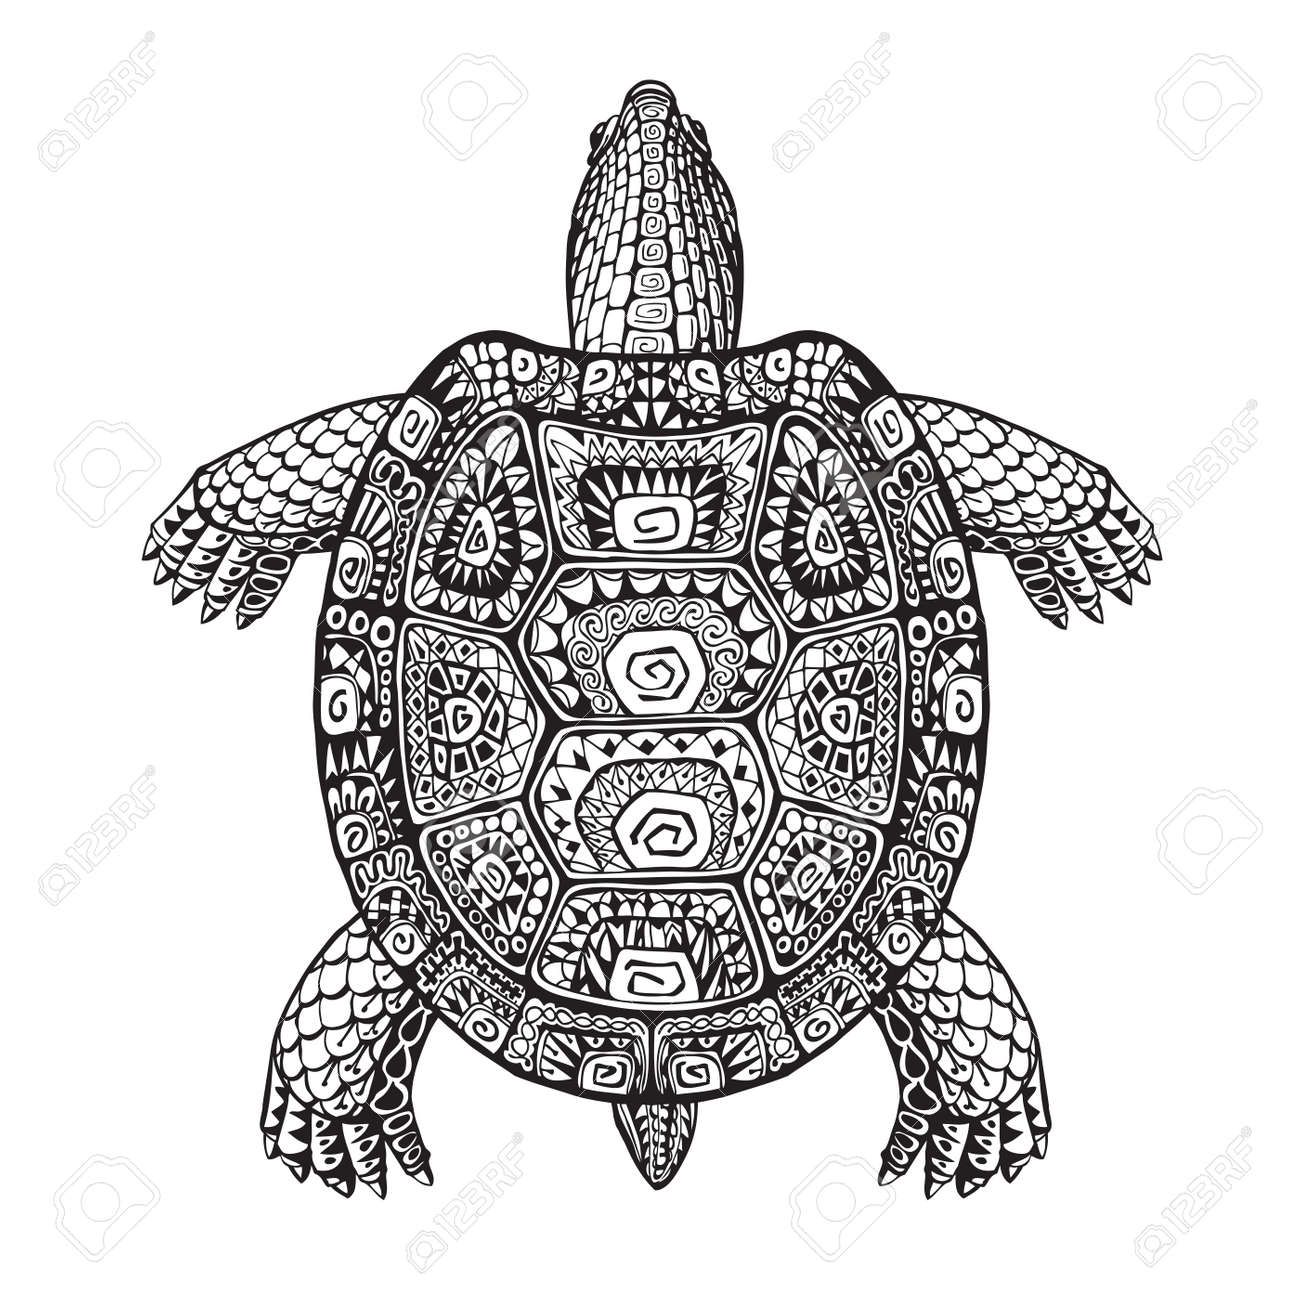 Turtle ethnic graphic style with decorative pattern. Vector illustration - 62978306